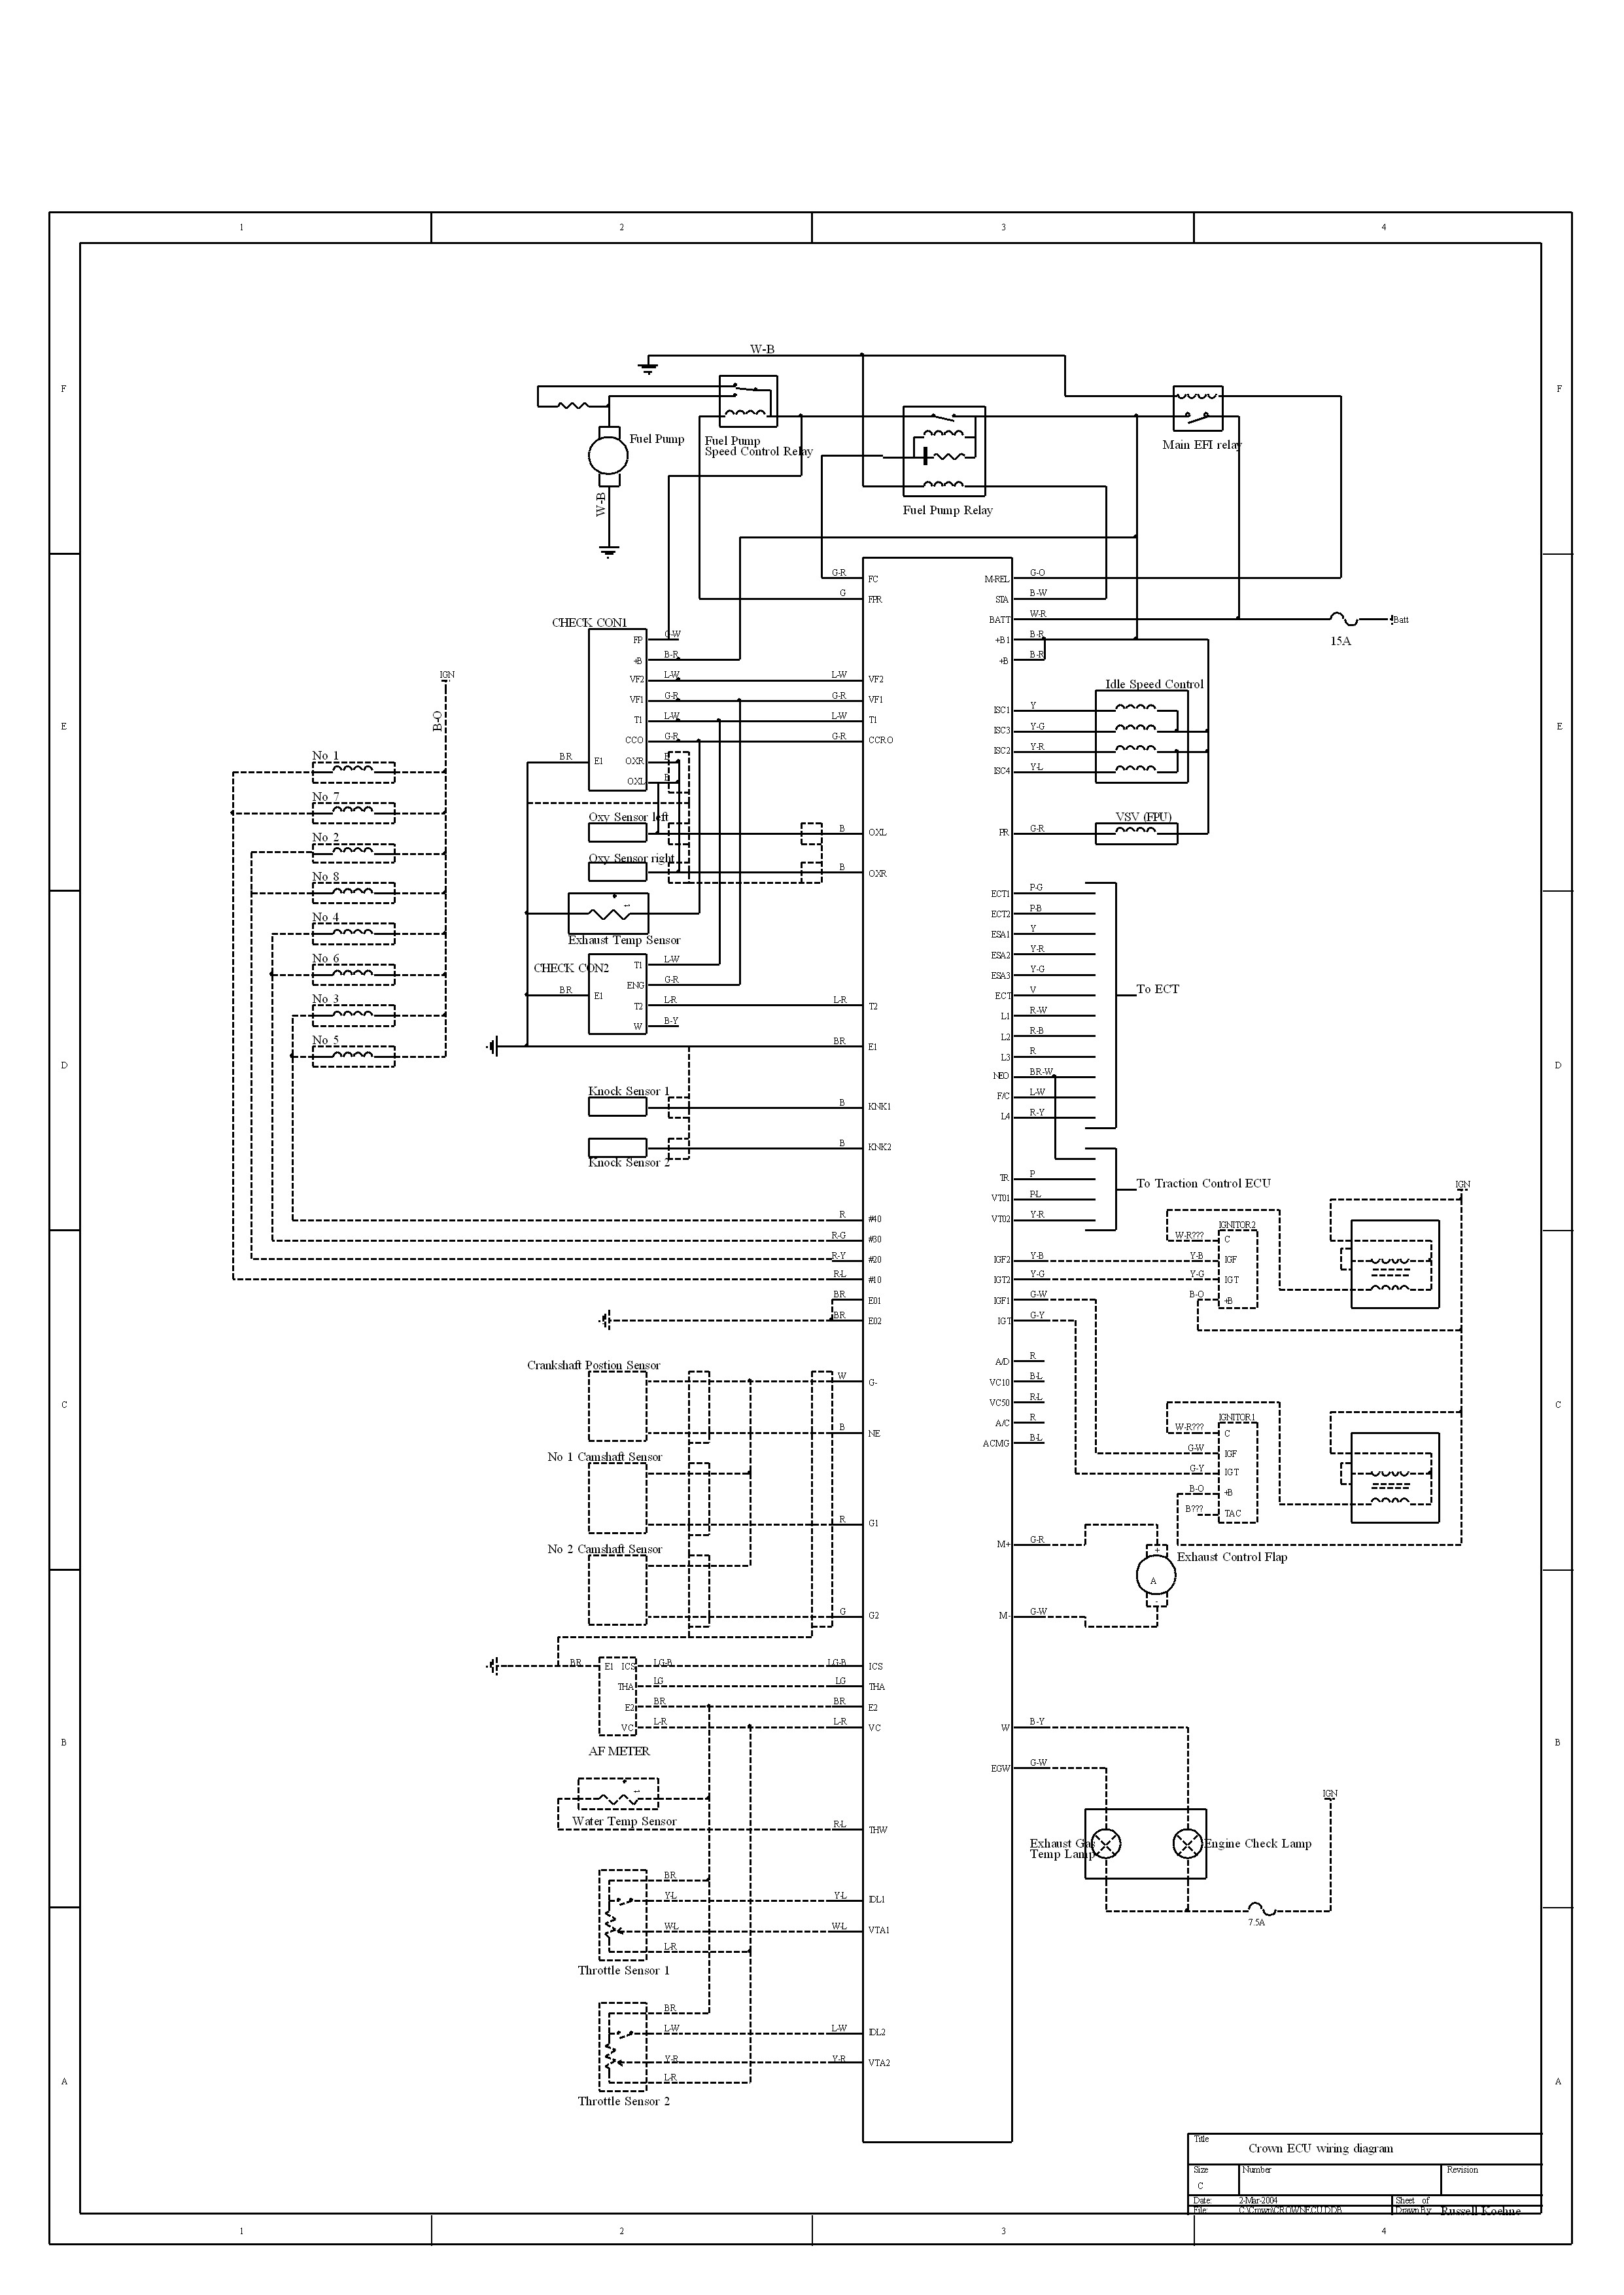 Simplex Wiring Diagram together with Three Phase Circuits as well Generator Load Bank Wiring Diagram furthermore Wiring Diagram Of Fm Radio moreover Nissan Color Codes Wiring Diagram. on simplex load bank wiring diagrams